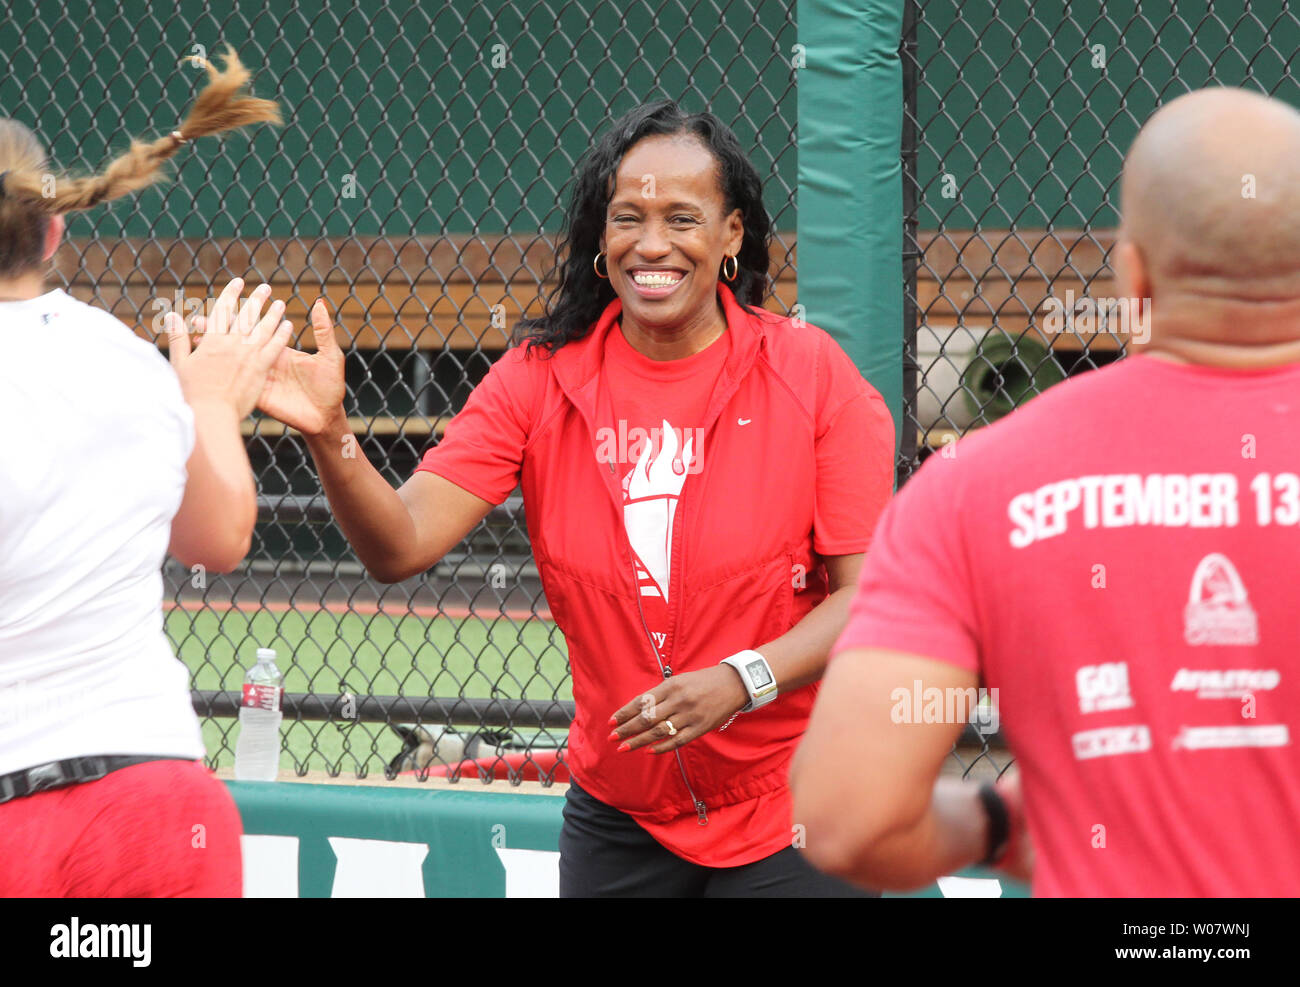 Former Olympic gold metalist Jackie-Joyner Kersee greets runners at the finish line of the 7th Annual Cardinals Care 6K run at Busch Stadium in St. Louis on September 18, 2016.   Photo by Bill Greenblatt/UPI - Stock Image